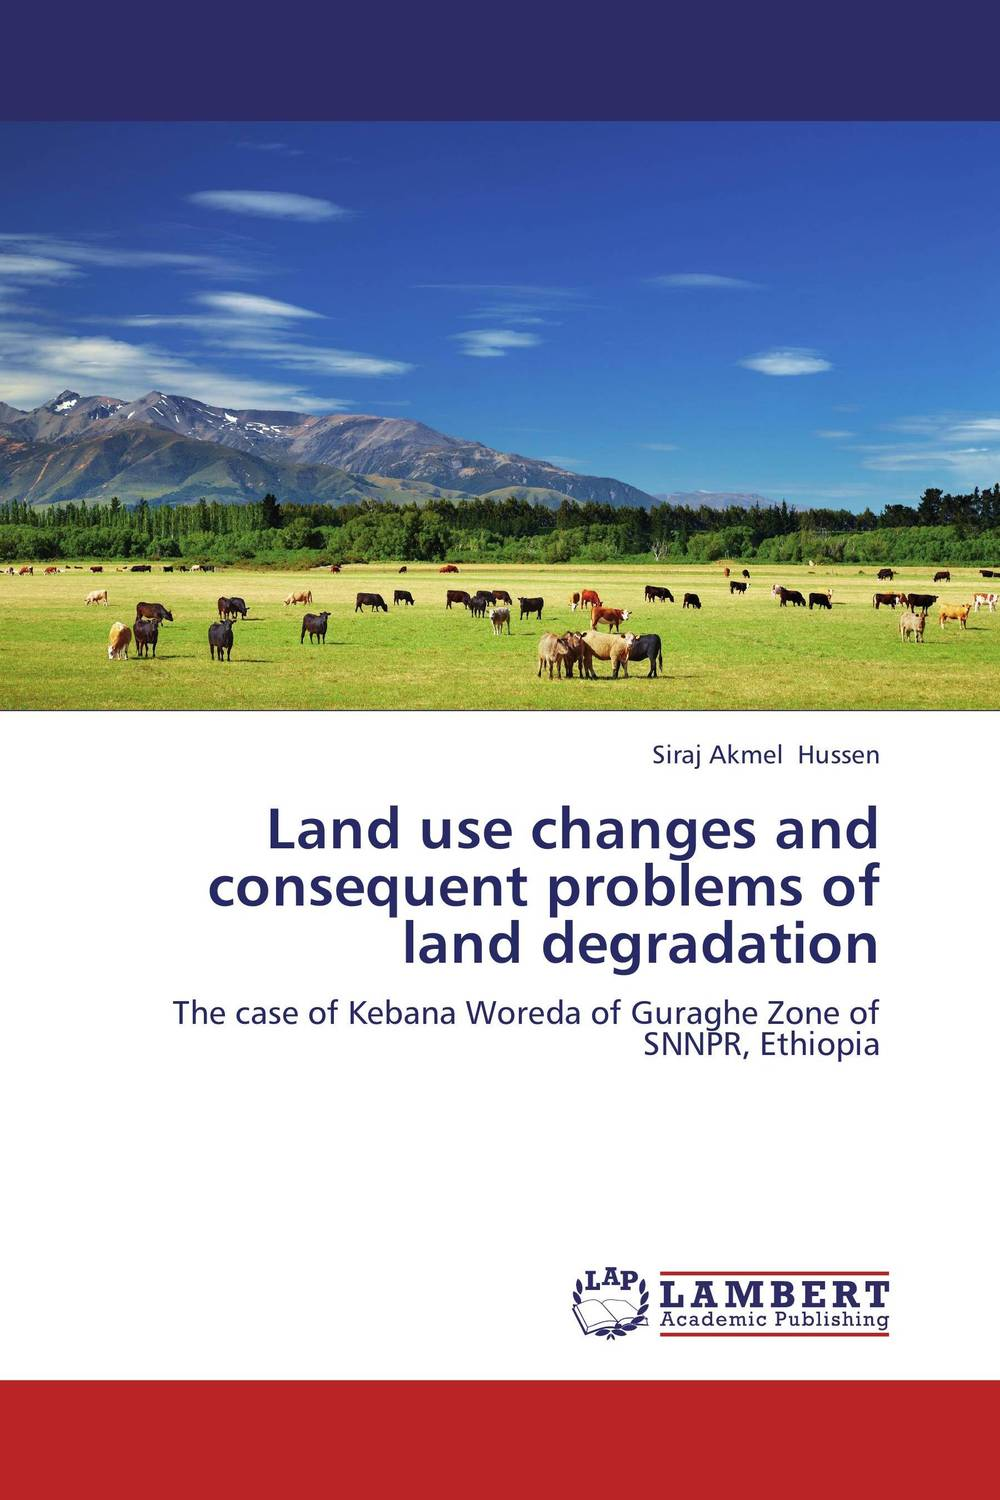 Land use changes and consequent problems of land degradation land tenure housing and low income earners